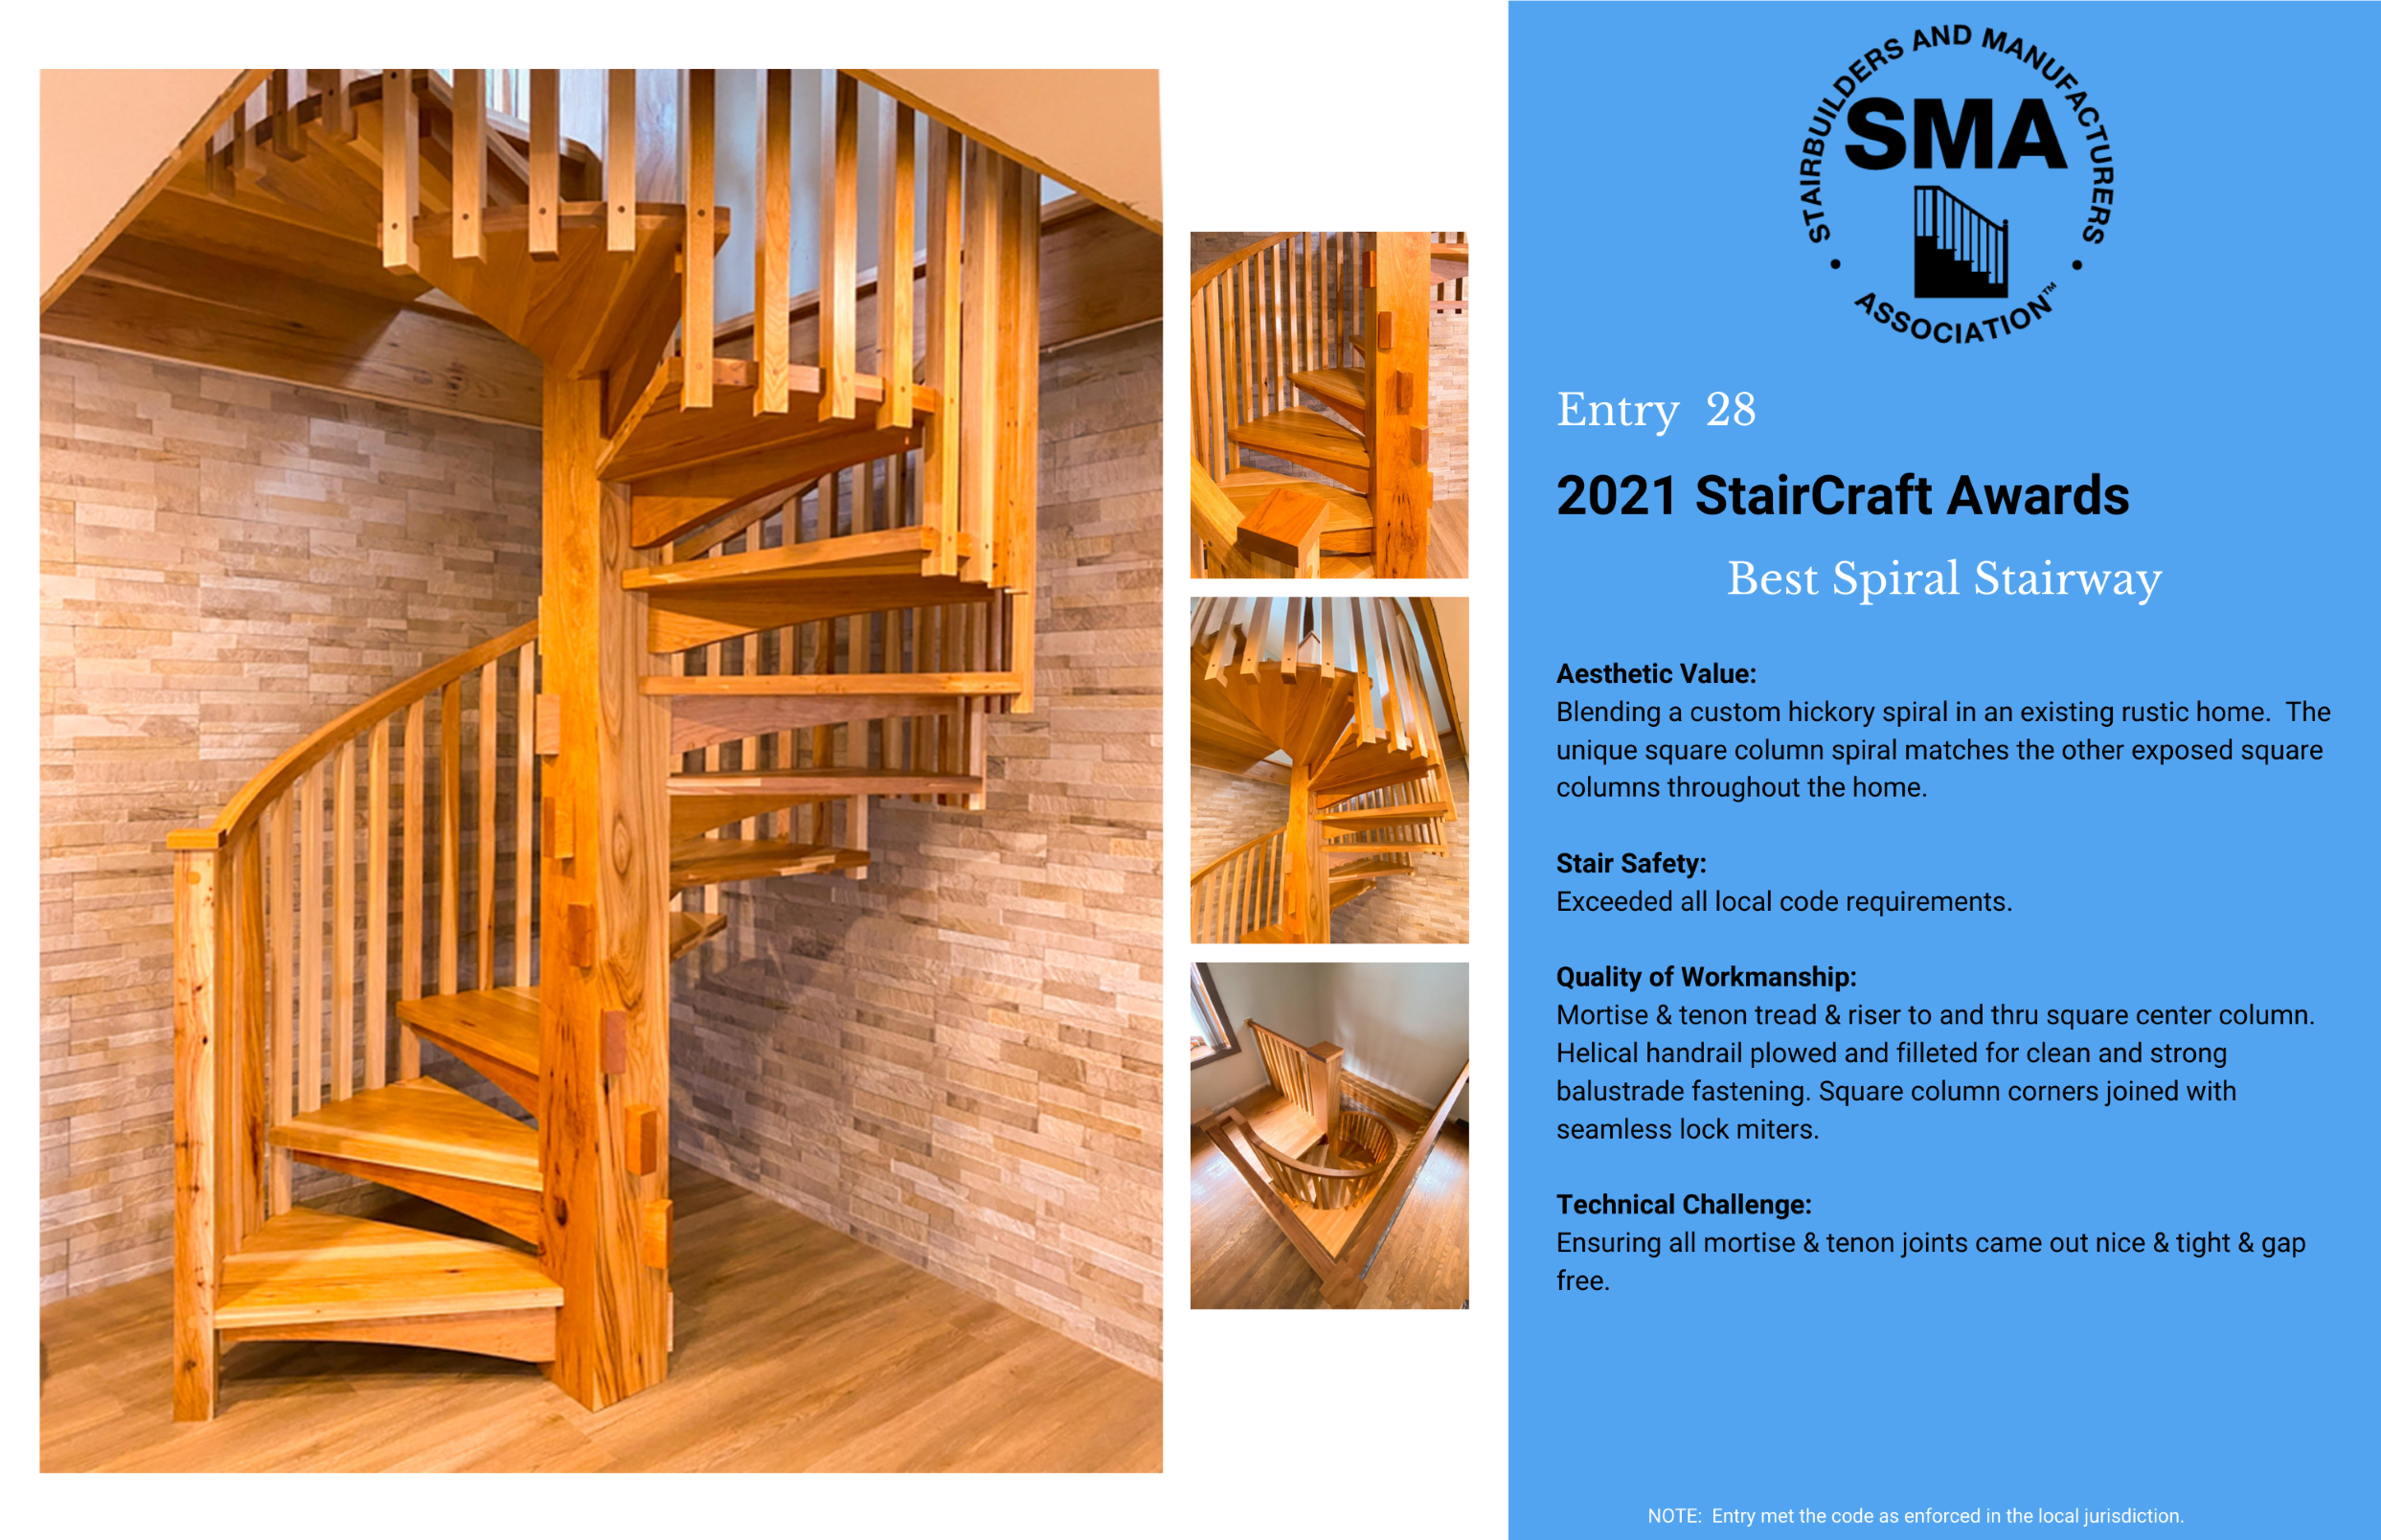 2021 StairCraft Awards Entry 28